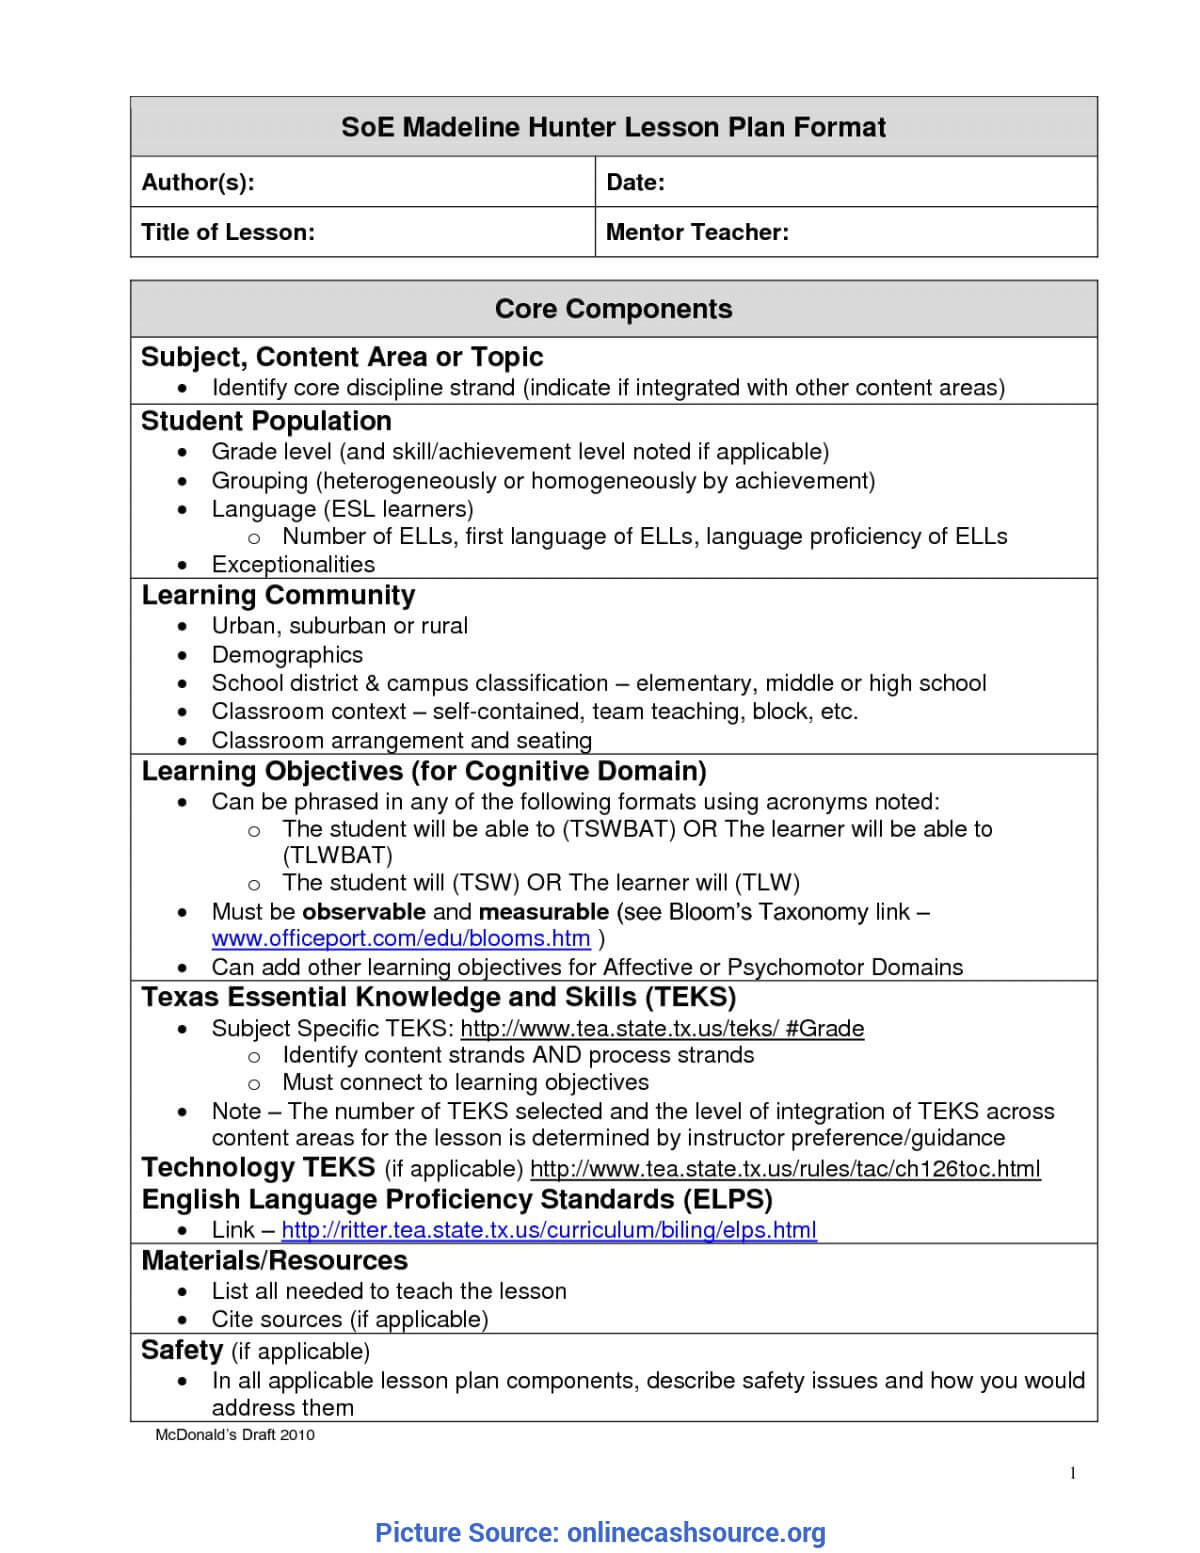 Madeline Hunter Lesson Plan Template Word - Colona.rsd7 Pertaining To Madeline Hunter Lesson Plan Template Word